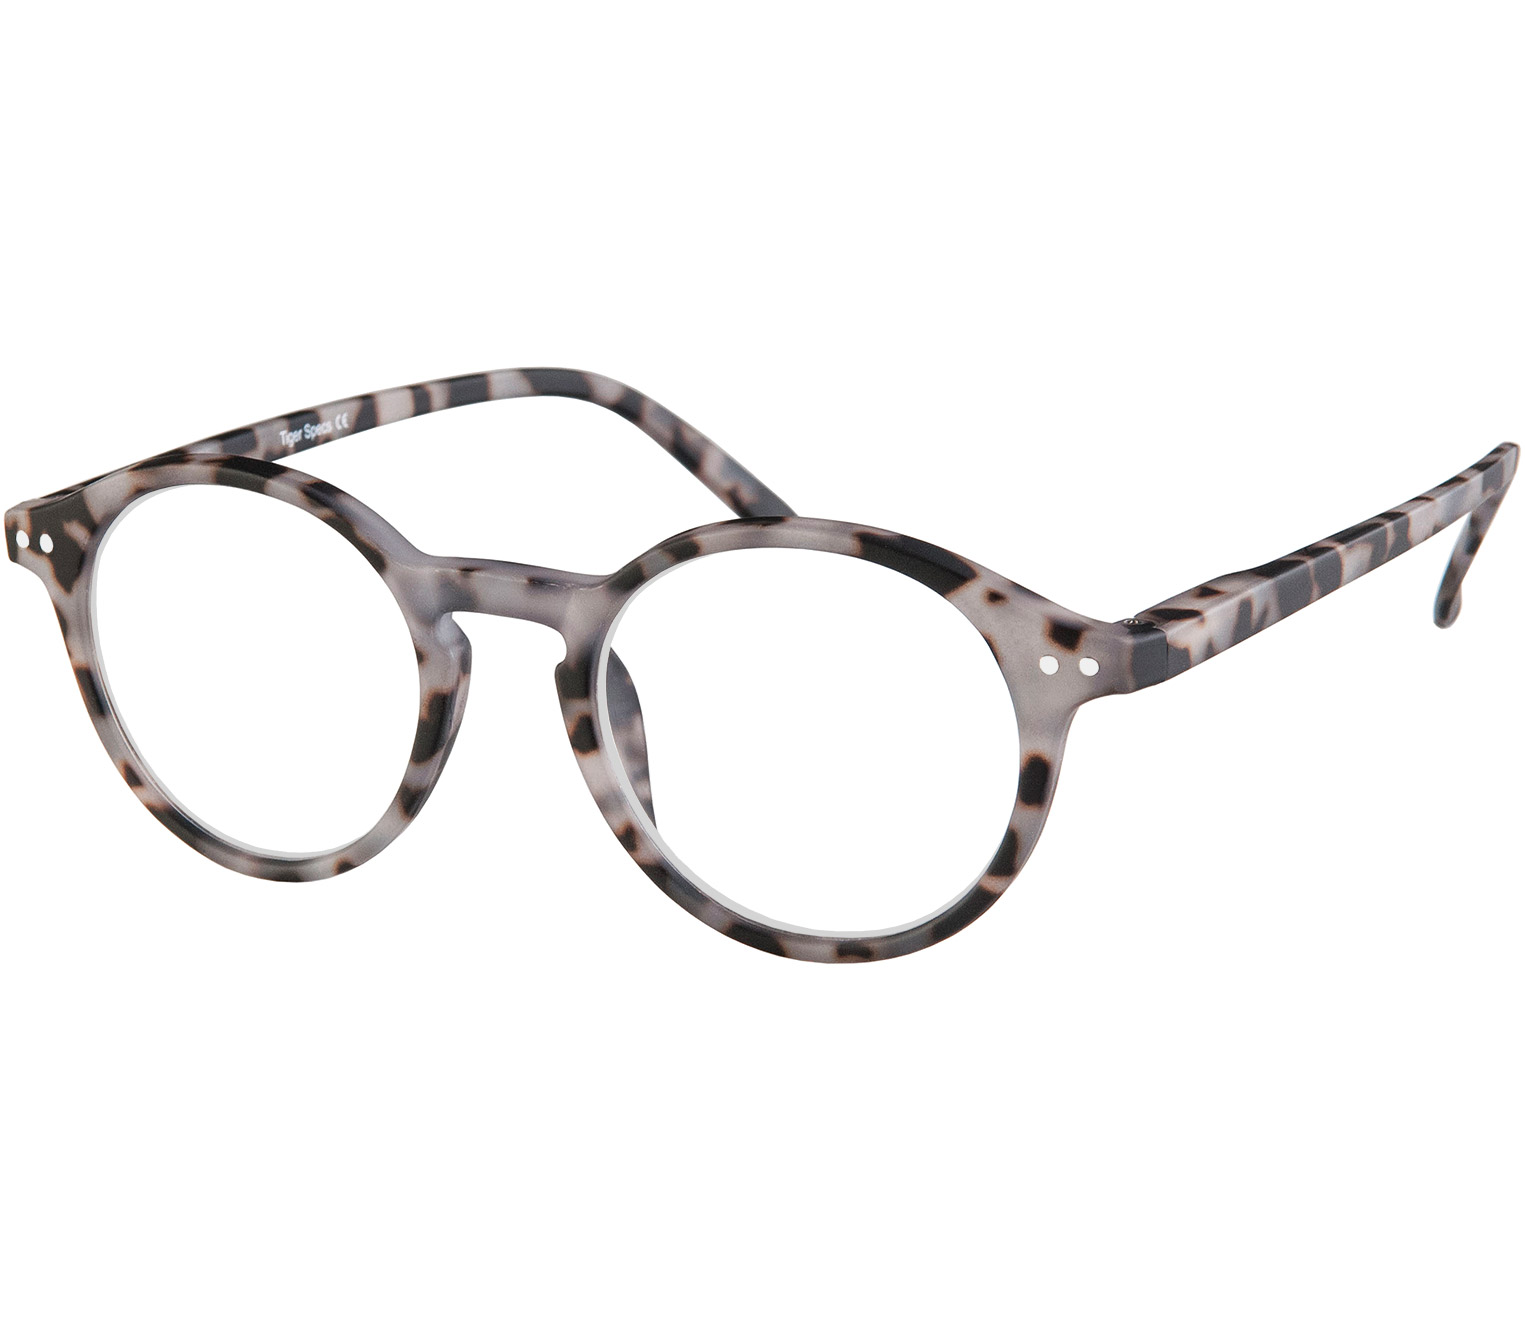 Main Image (Angle) - Oskar (Grey Tortoise) Retro Reading Glasses